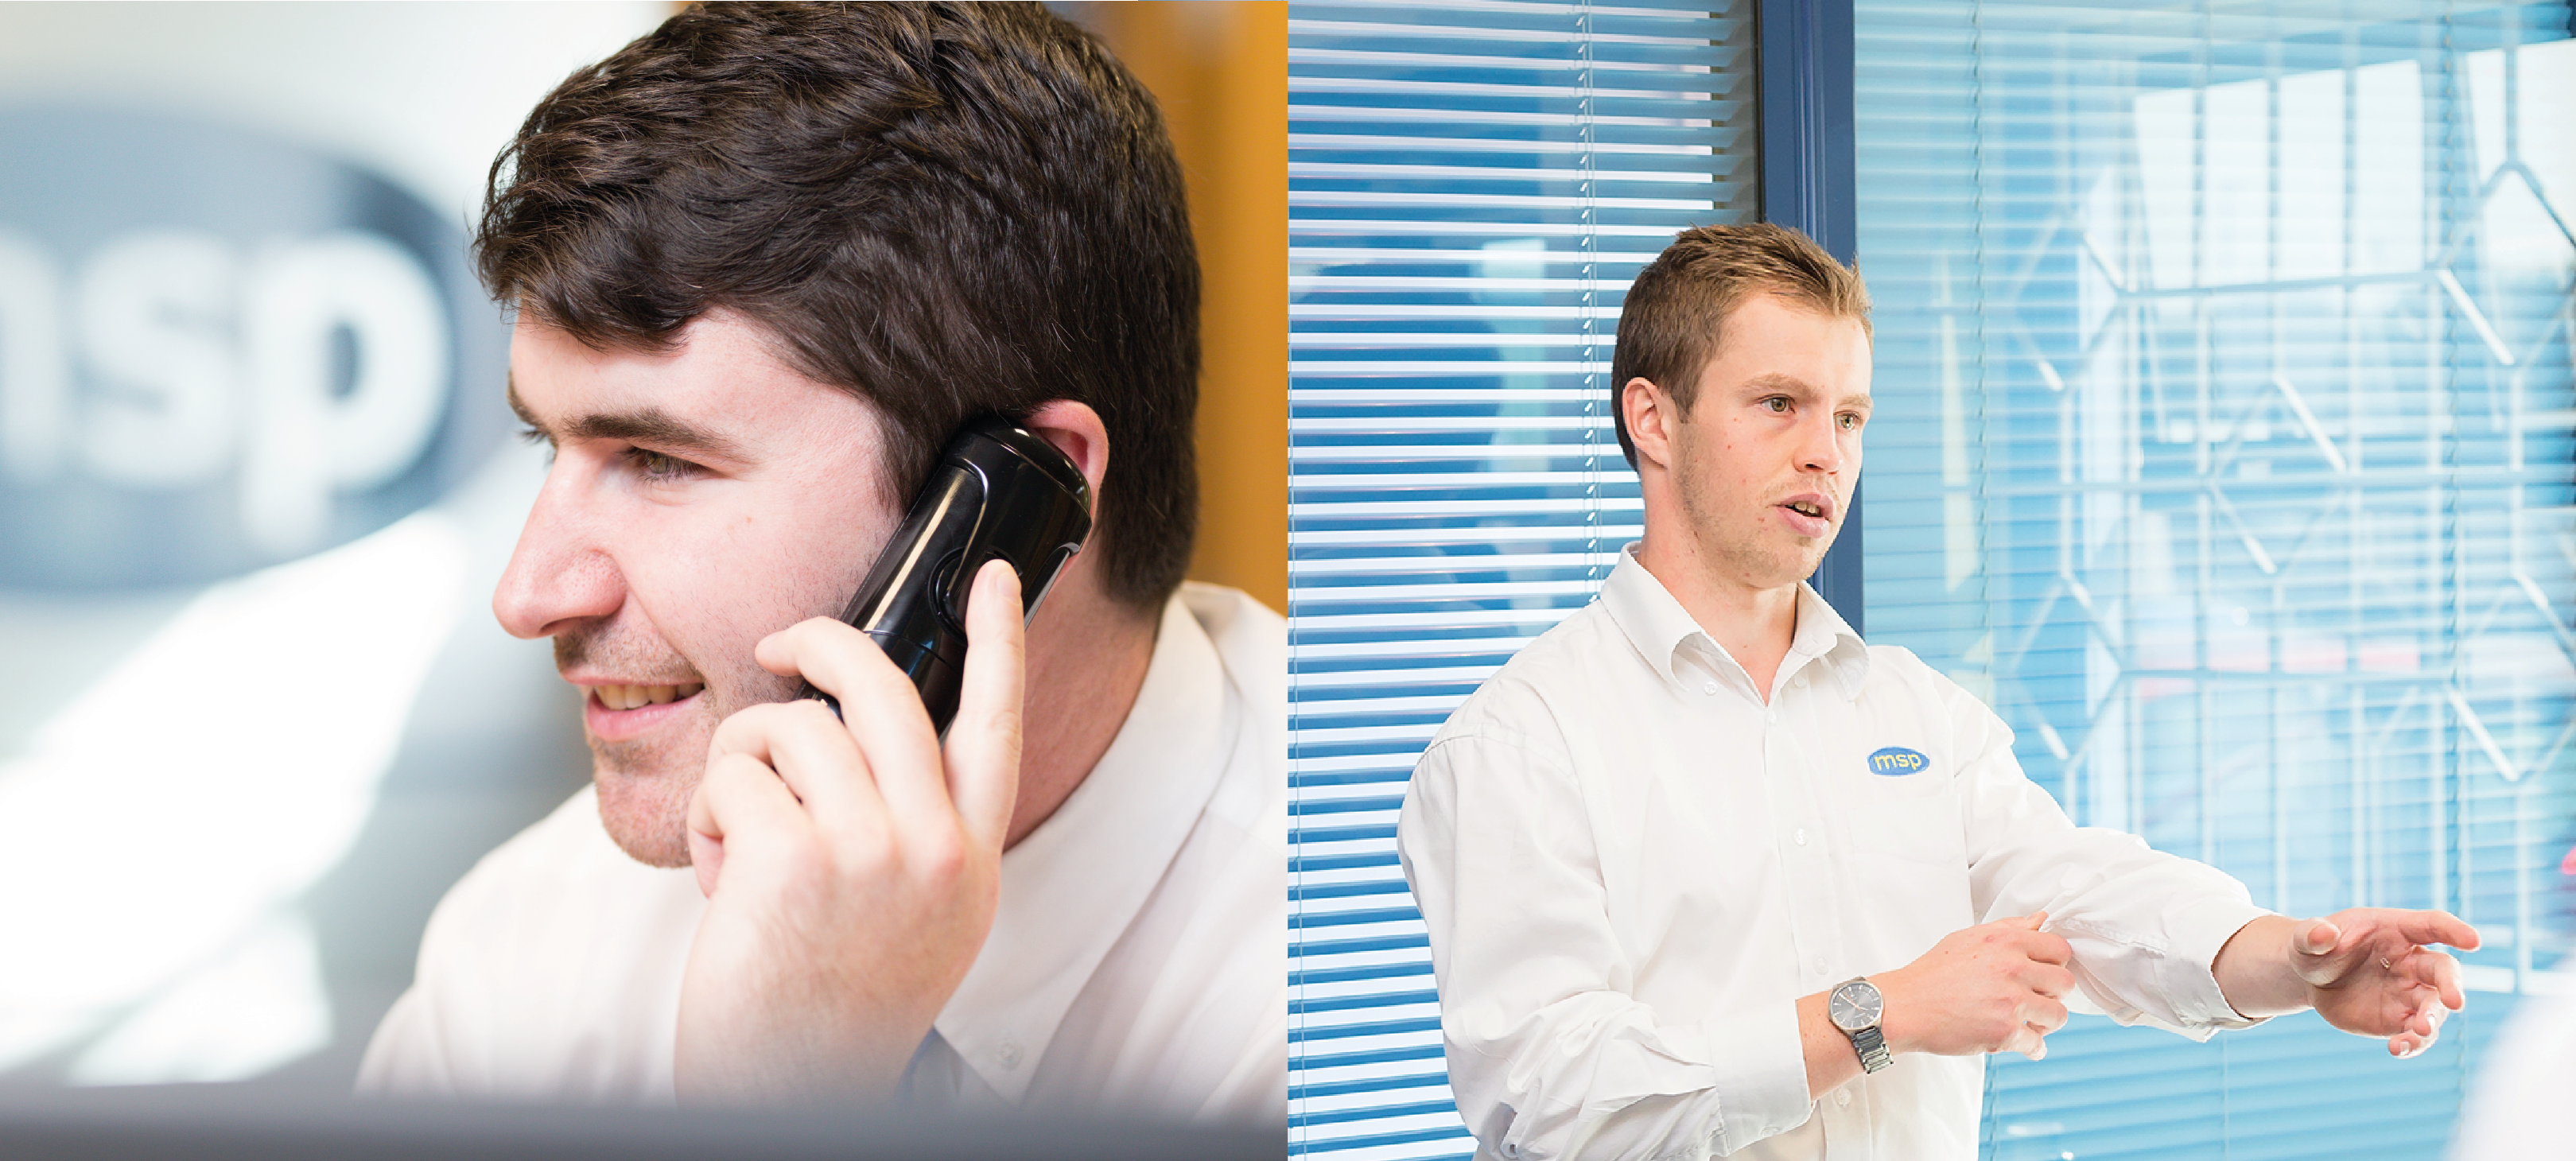 Graeme Potts is appointed as Engineering Manager and Laurence Reeves is promoted to Technical Lead.